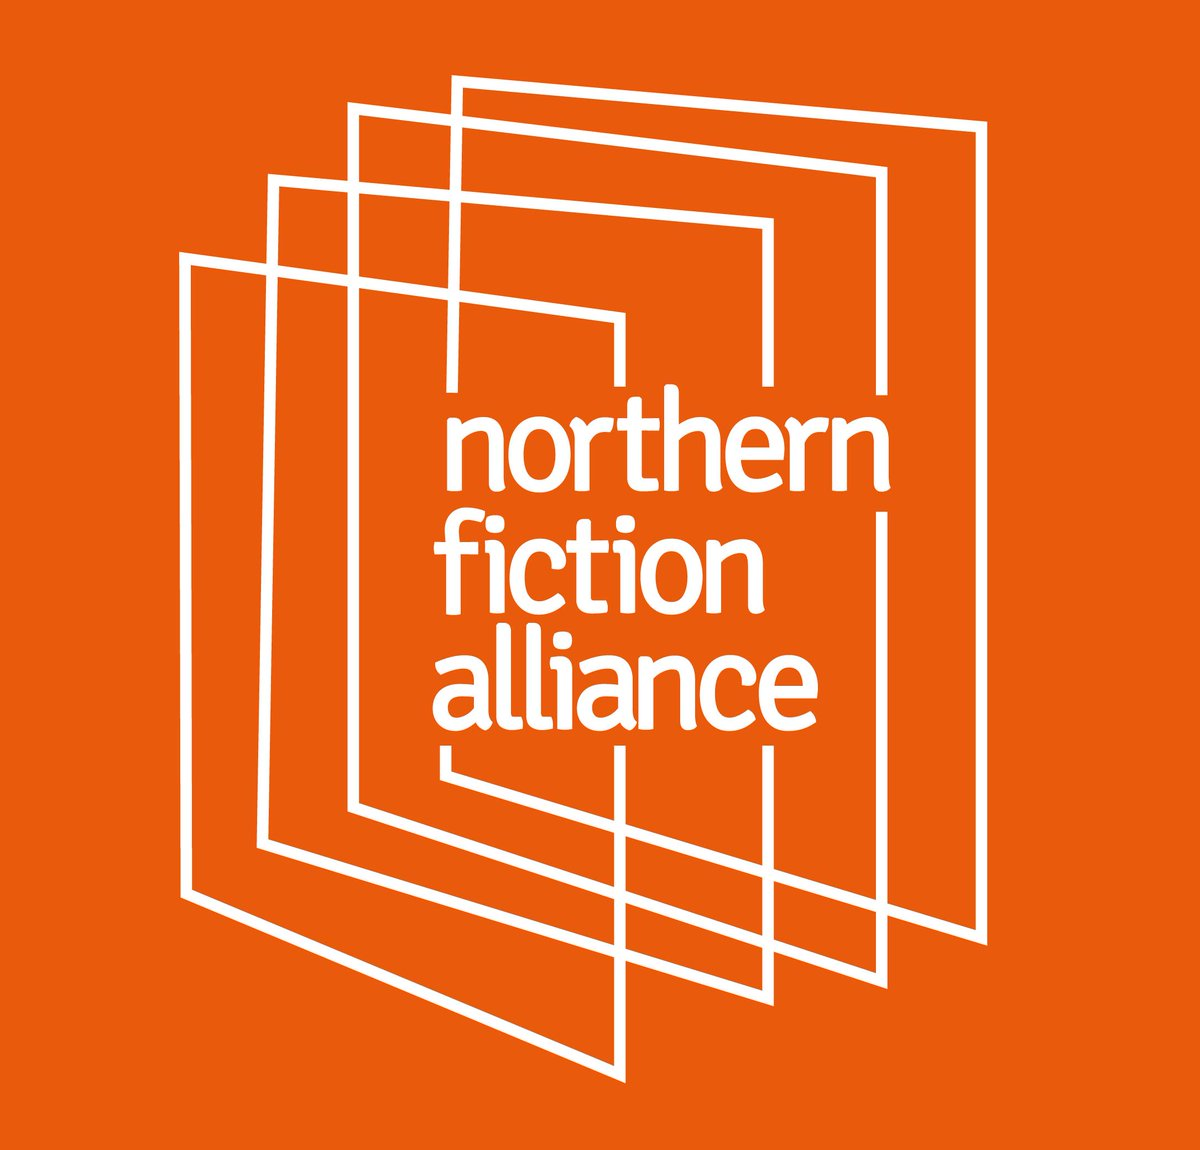 Exciting news! If you cant get to your local bookshop, The Northern Fiction Alliance store is now live on @BOOKSetc_online - top titles from northern indie presses available to shop with special discounts now, check it out here: booksetc.co.uk/features/view/…